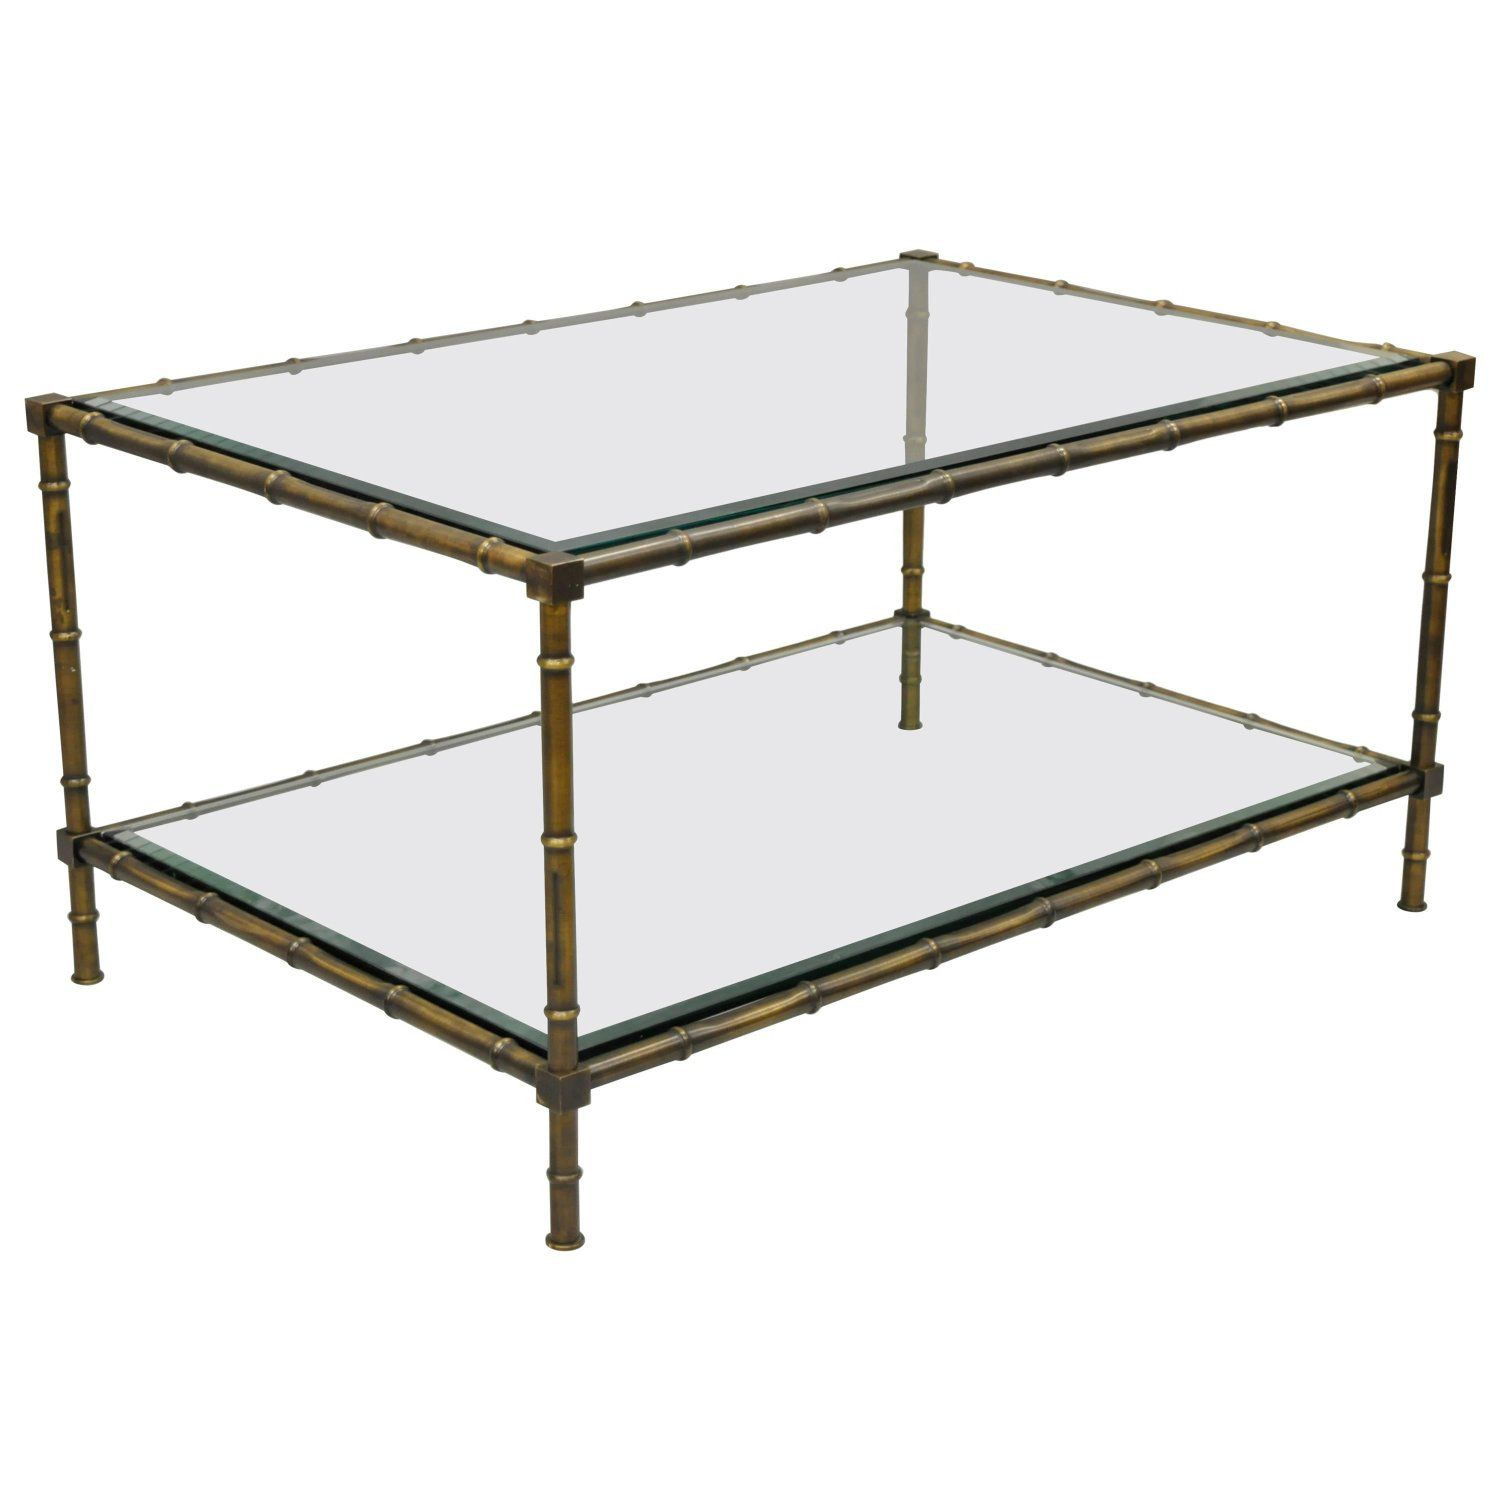 Brass And Glass Faux Bamboo Two Tier Coffee Table French Hollywood Regency Style Coffee Table Faux Bamboo Hollywood Regency Style [ 1500 x 1500 Pixel ]